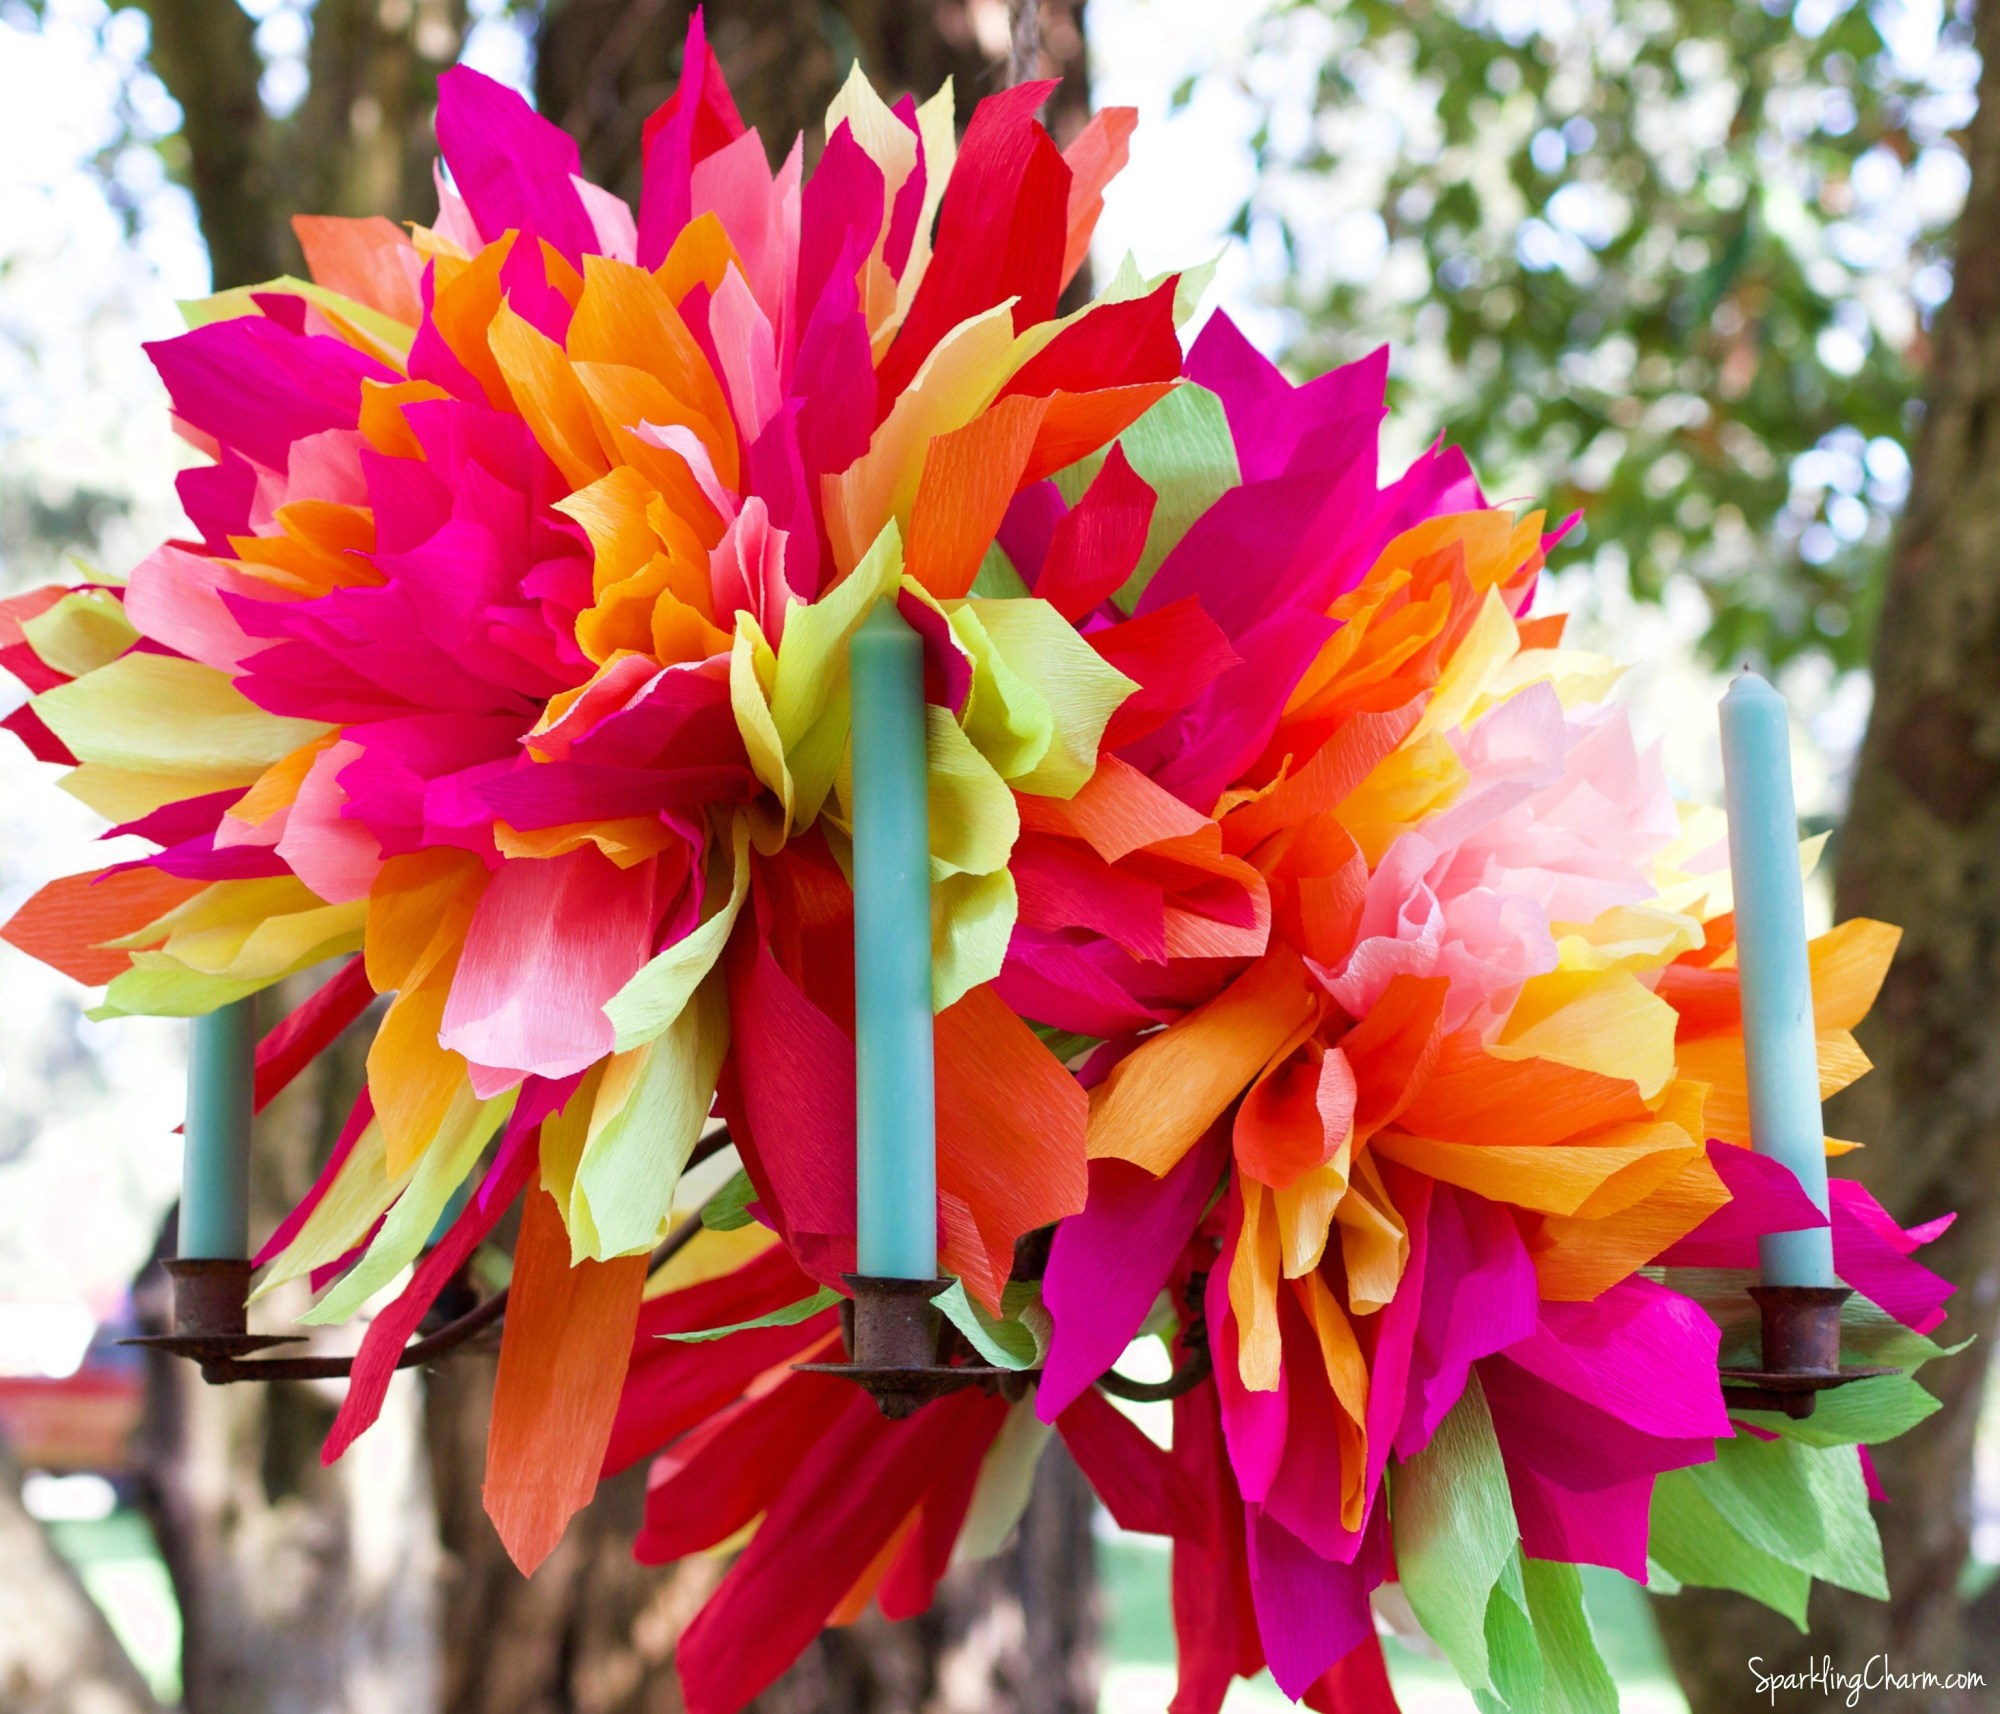 Monday Coffee Break Inspiration Feature:  Crepe Paper Flower Tutorial